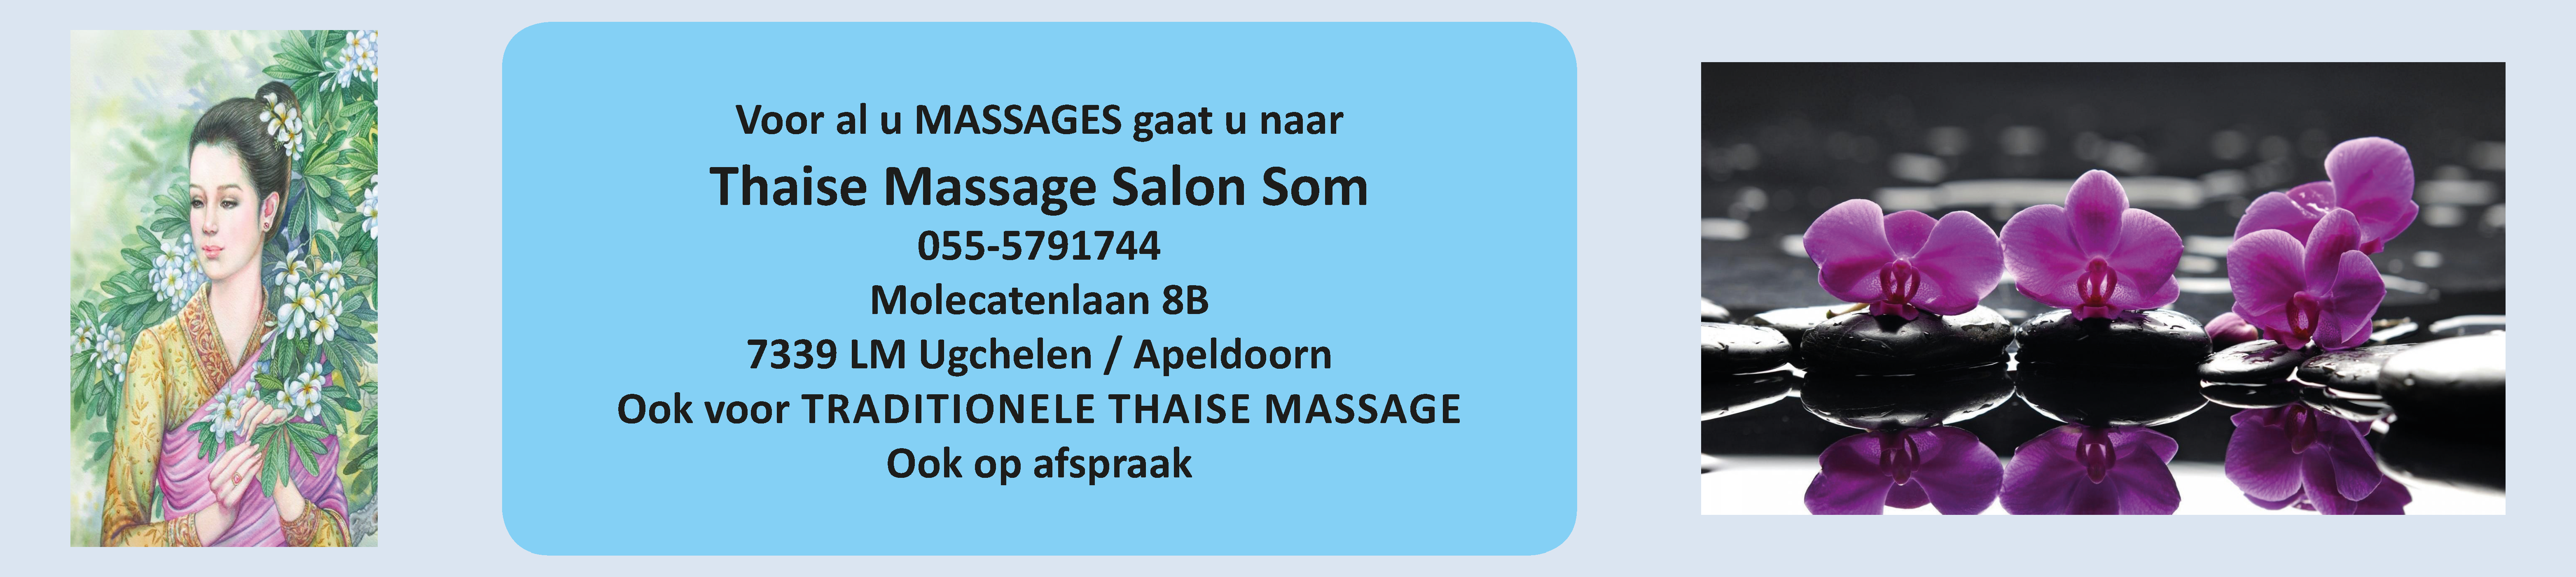 Thaise Massage Salon Som